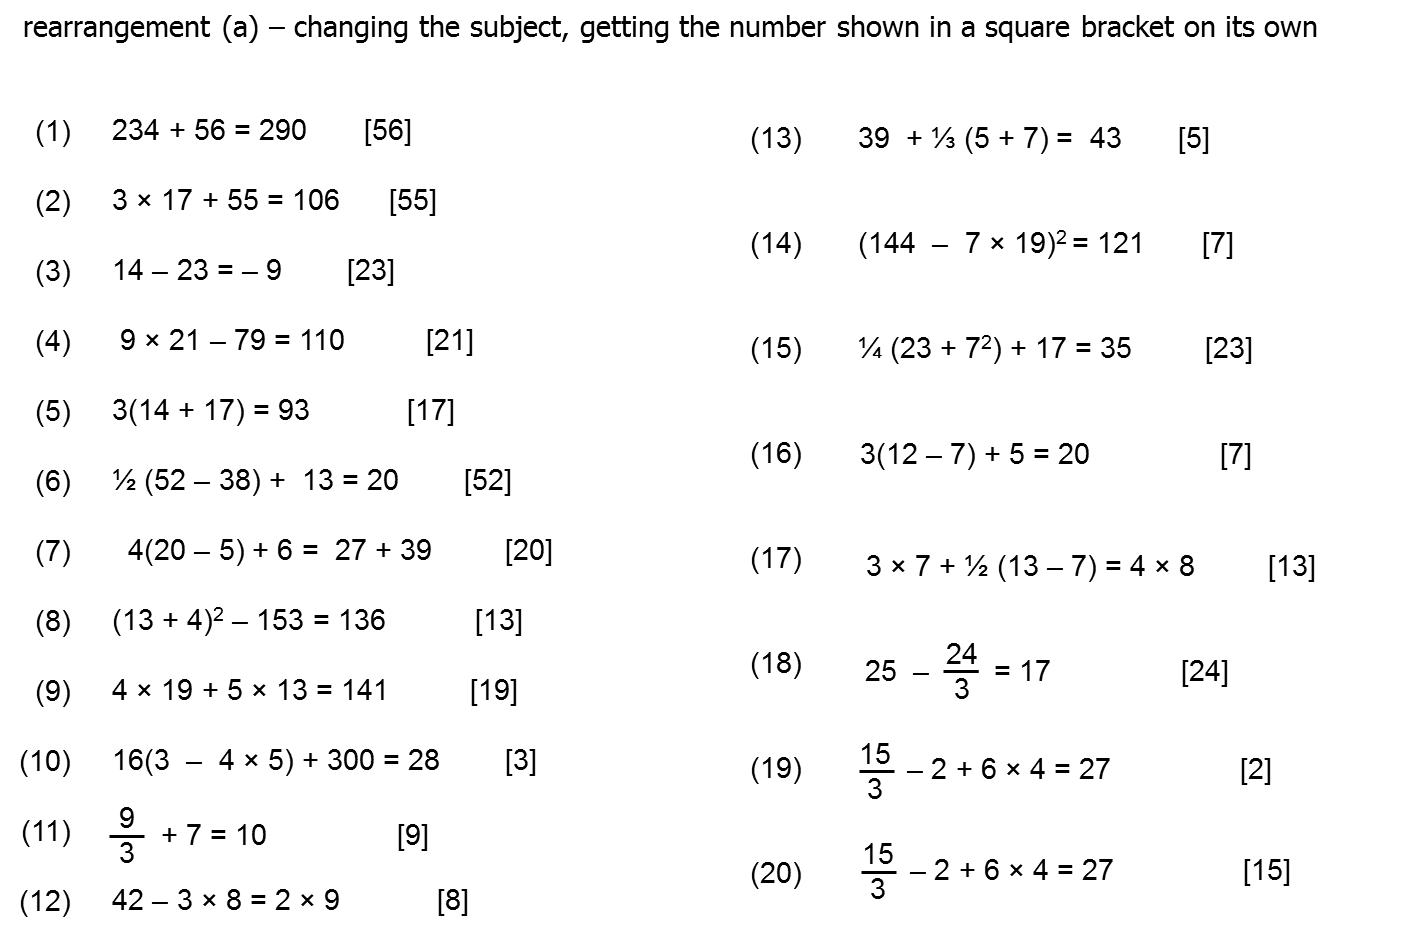 algebra worksheet: NEW 9 ALGEBRA WORKSHEETS EXPANDING BRACKETS